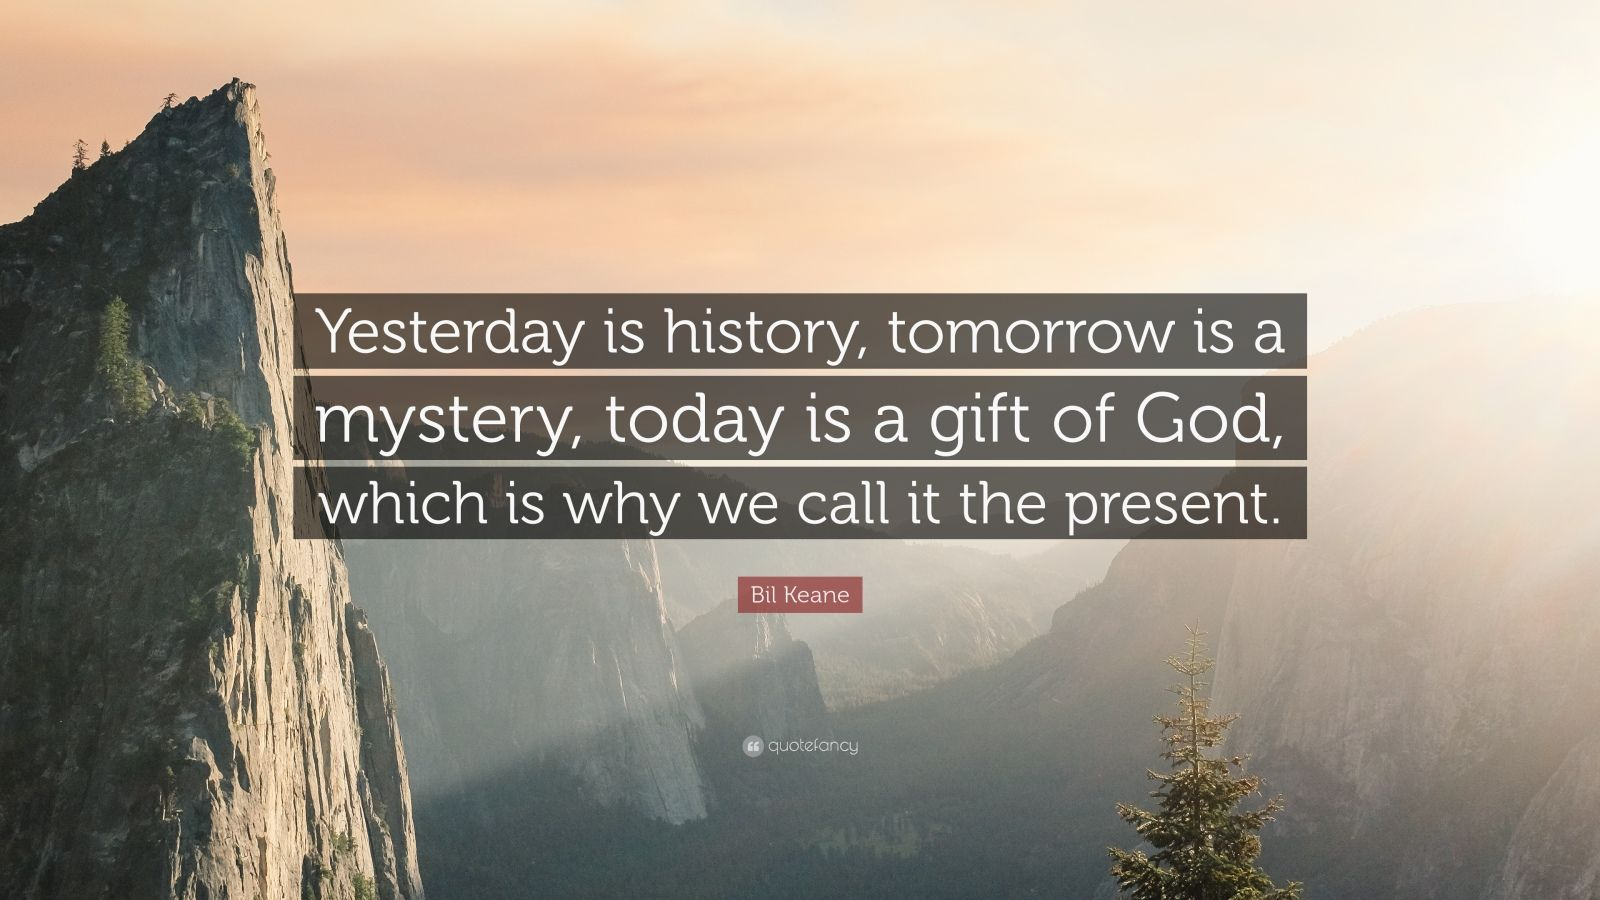 Dalai Lama Quotes Wallpapers Bil Keane Quote Yesterday Is History Tomorrow Is A